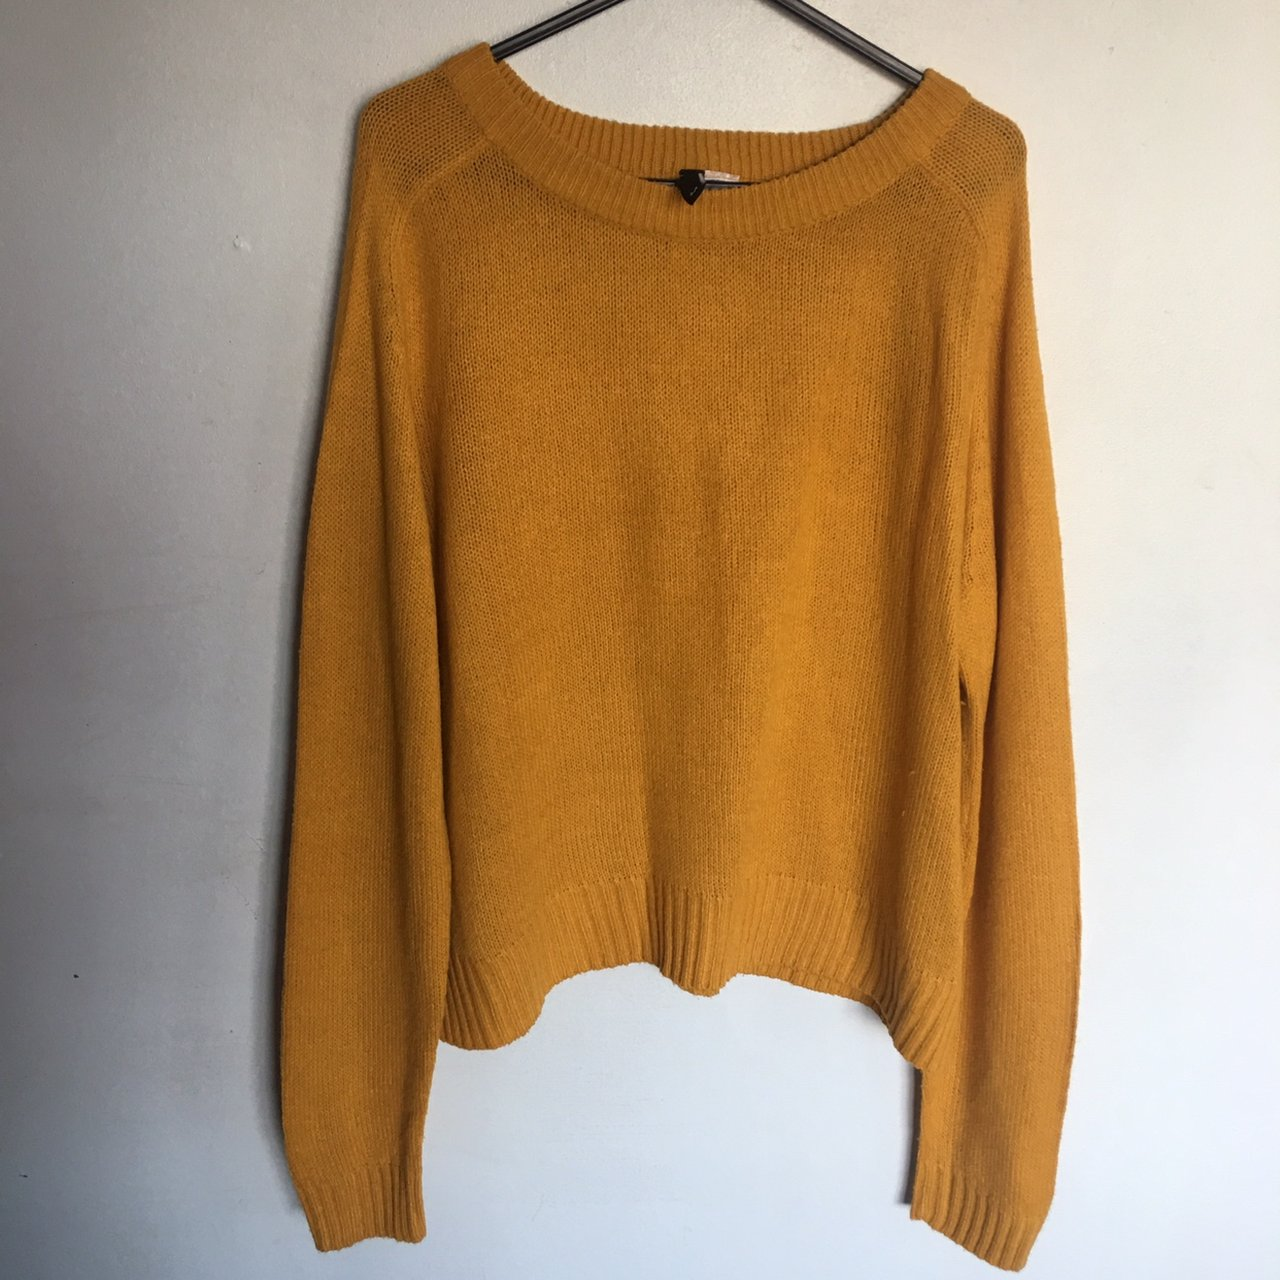 974fffc058 H M mustard yellow knitted jumper